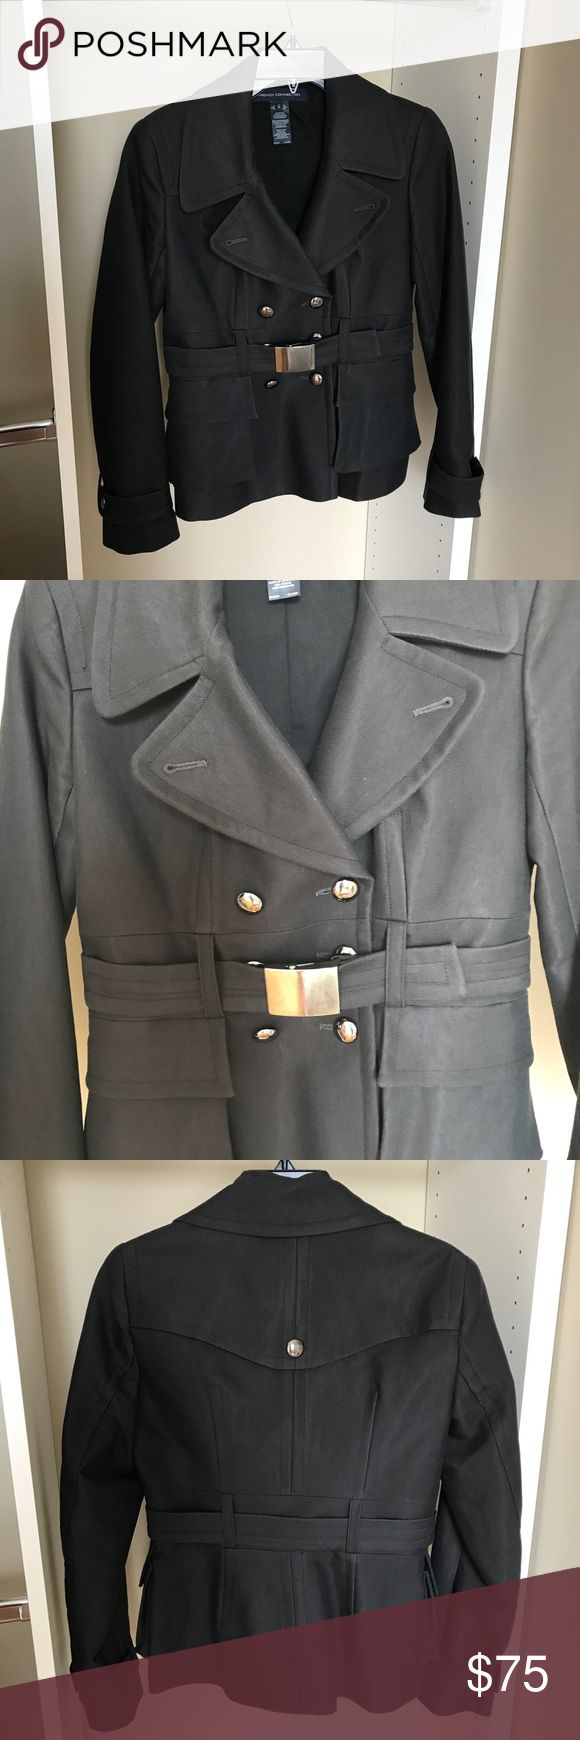 French Connection jacket Great condition French Connection jacket. Dresses up any outfit! French Connection Jackets & Coats